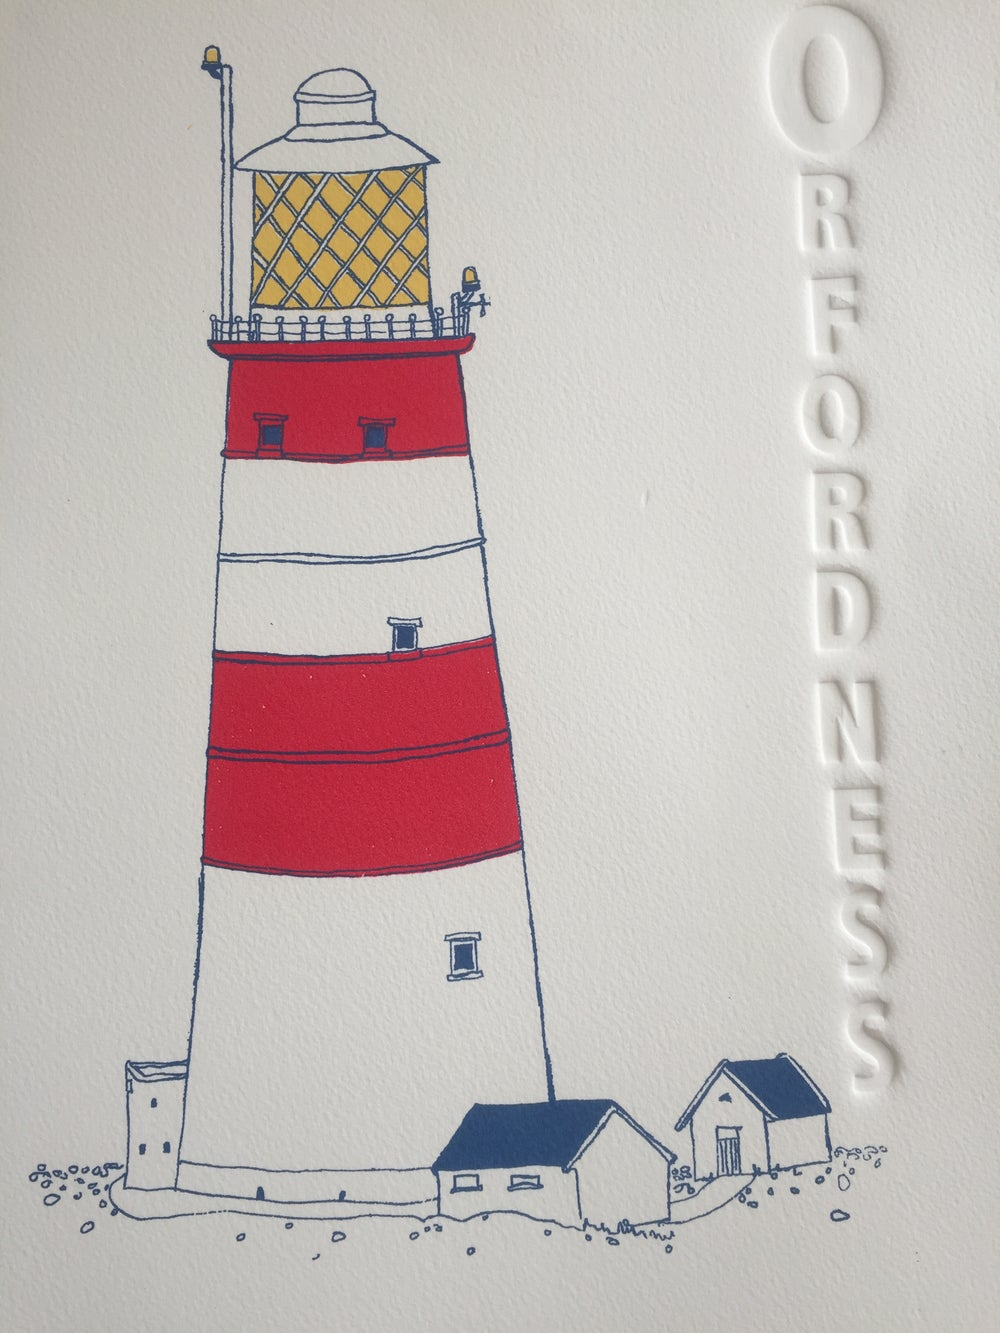 Image of O is for Orfordness Lighthouse